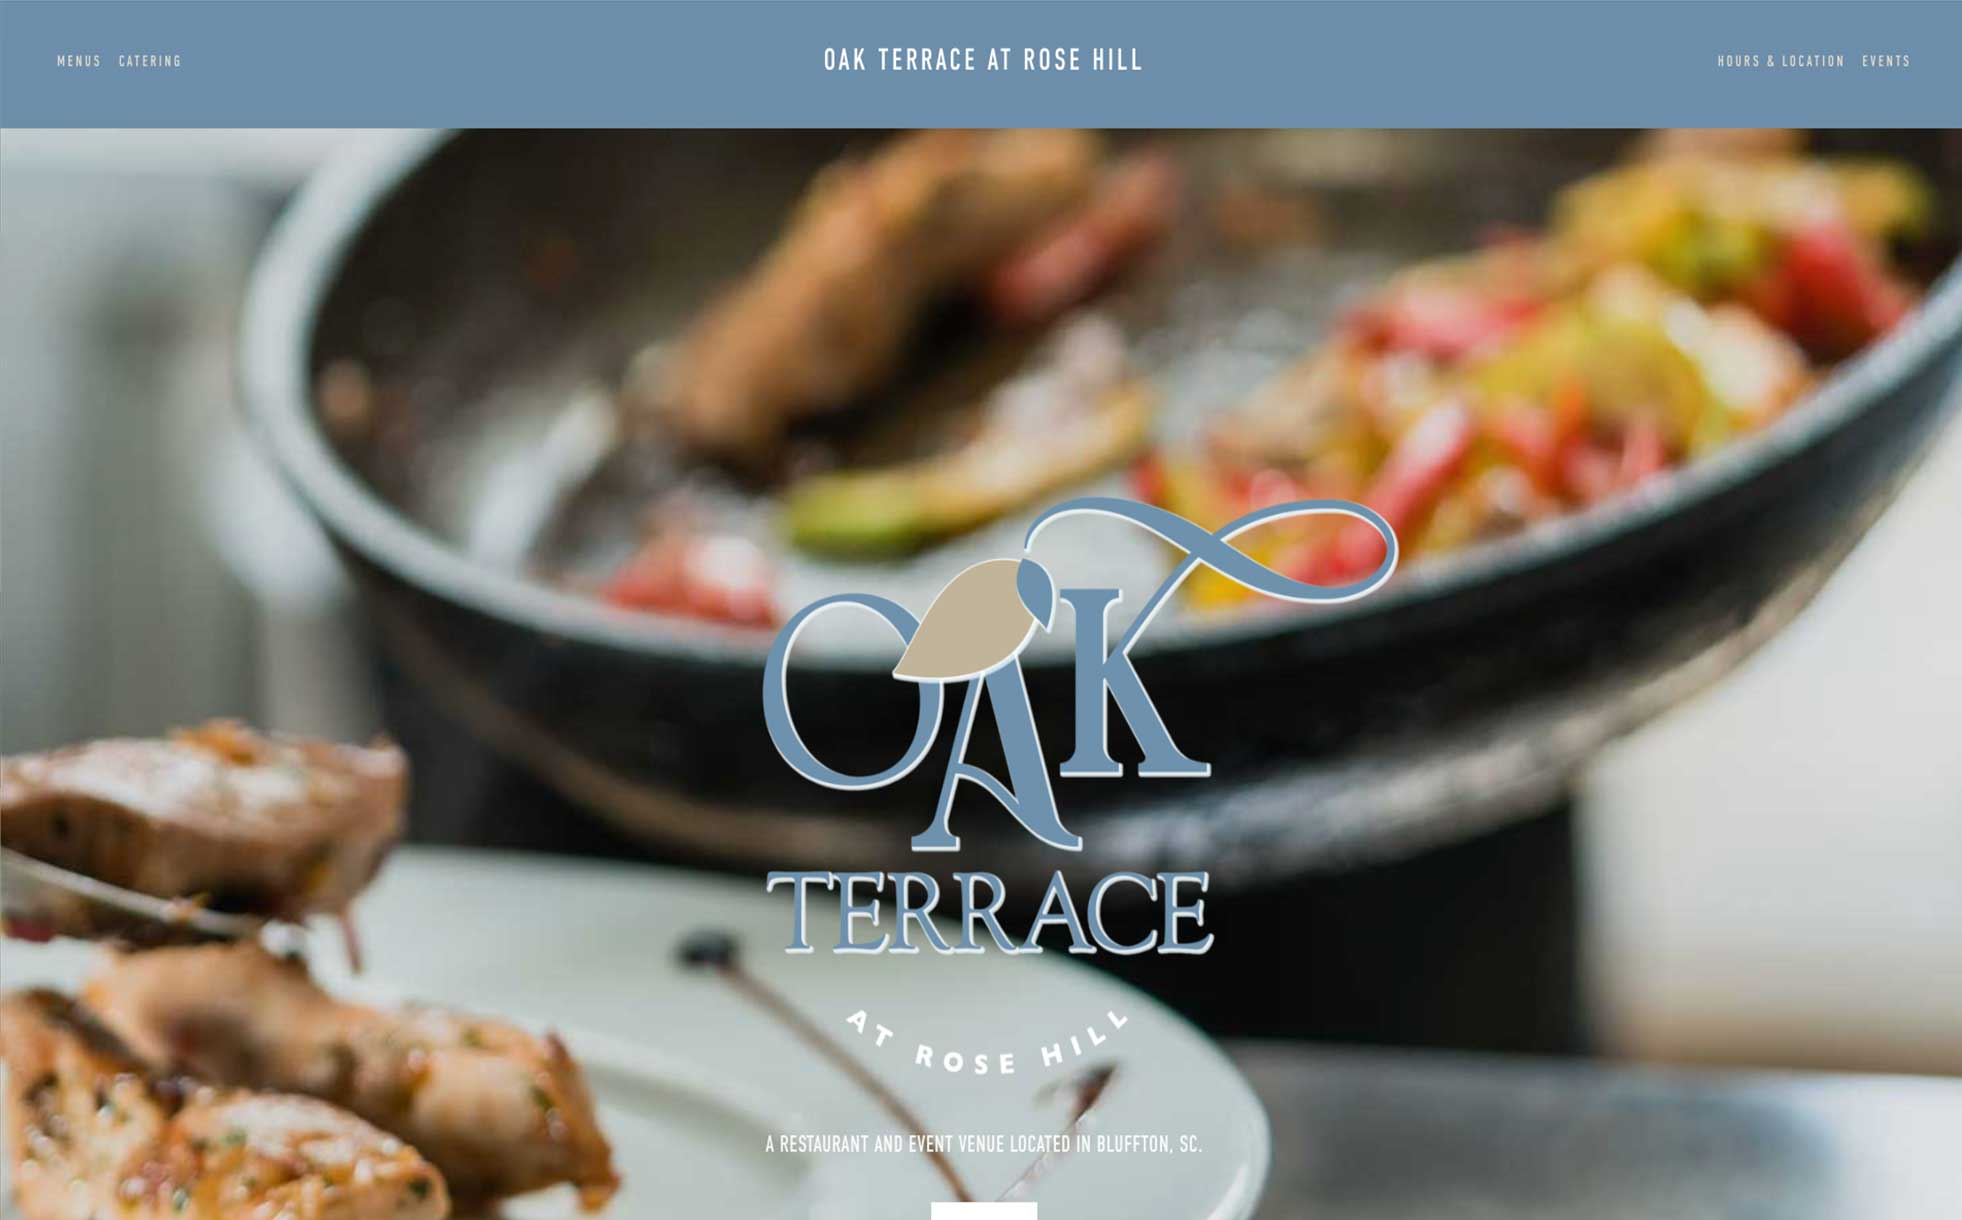 Oak Terrace at Rose Hill Catering and Restaurant Squarespace website by Caitilin McPhillips.